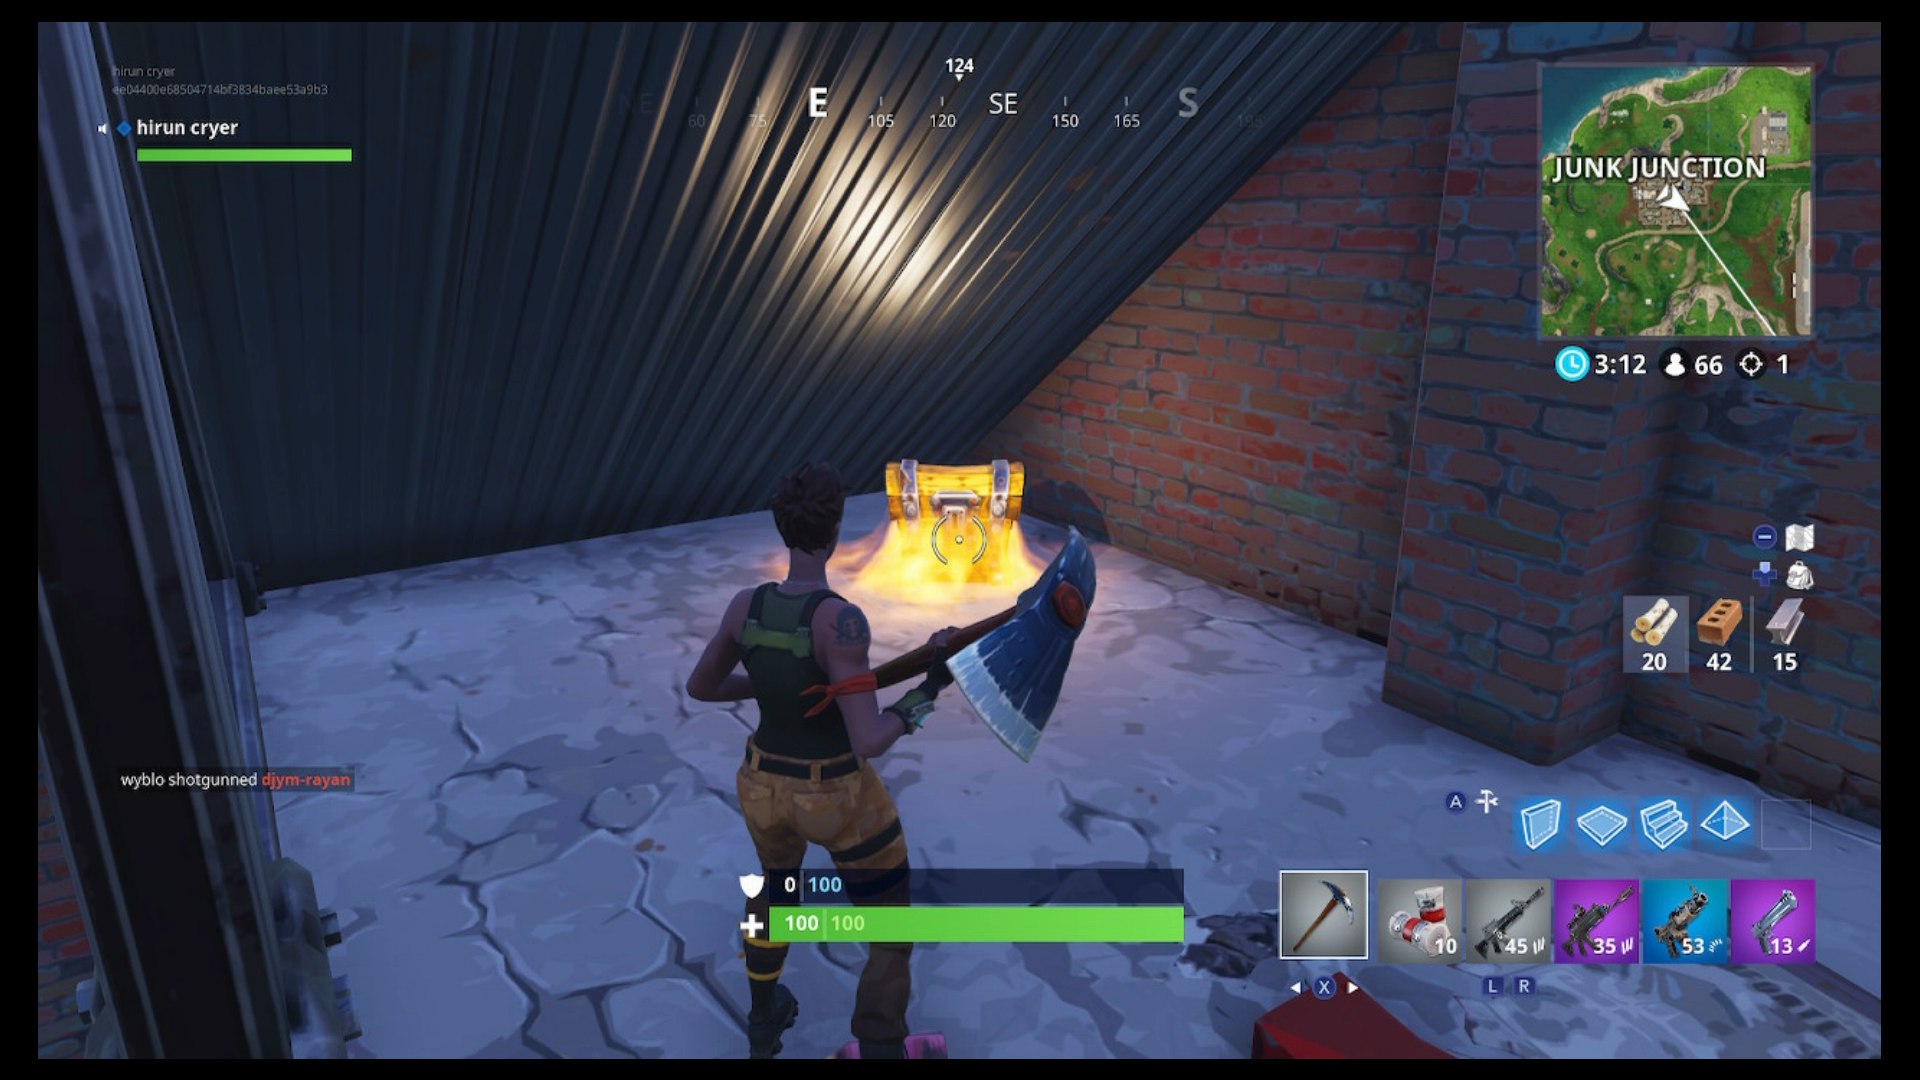 Fortnite Junk Junction Chest Locations Search Chests In